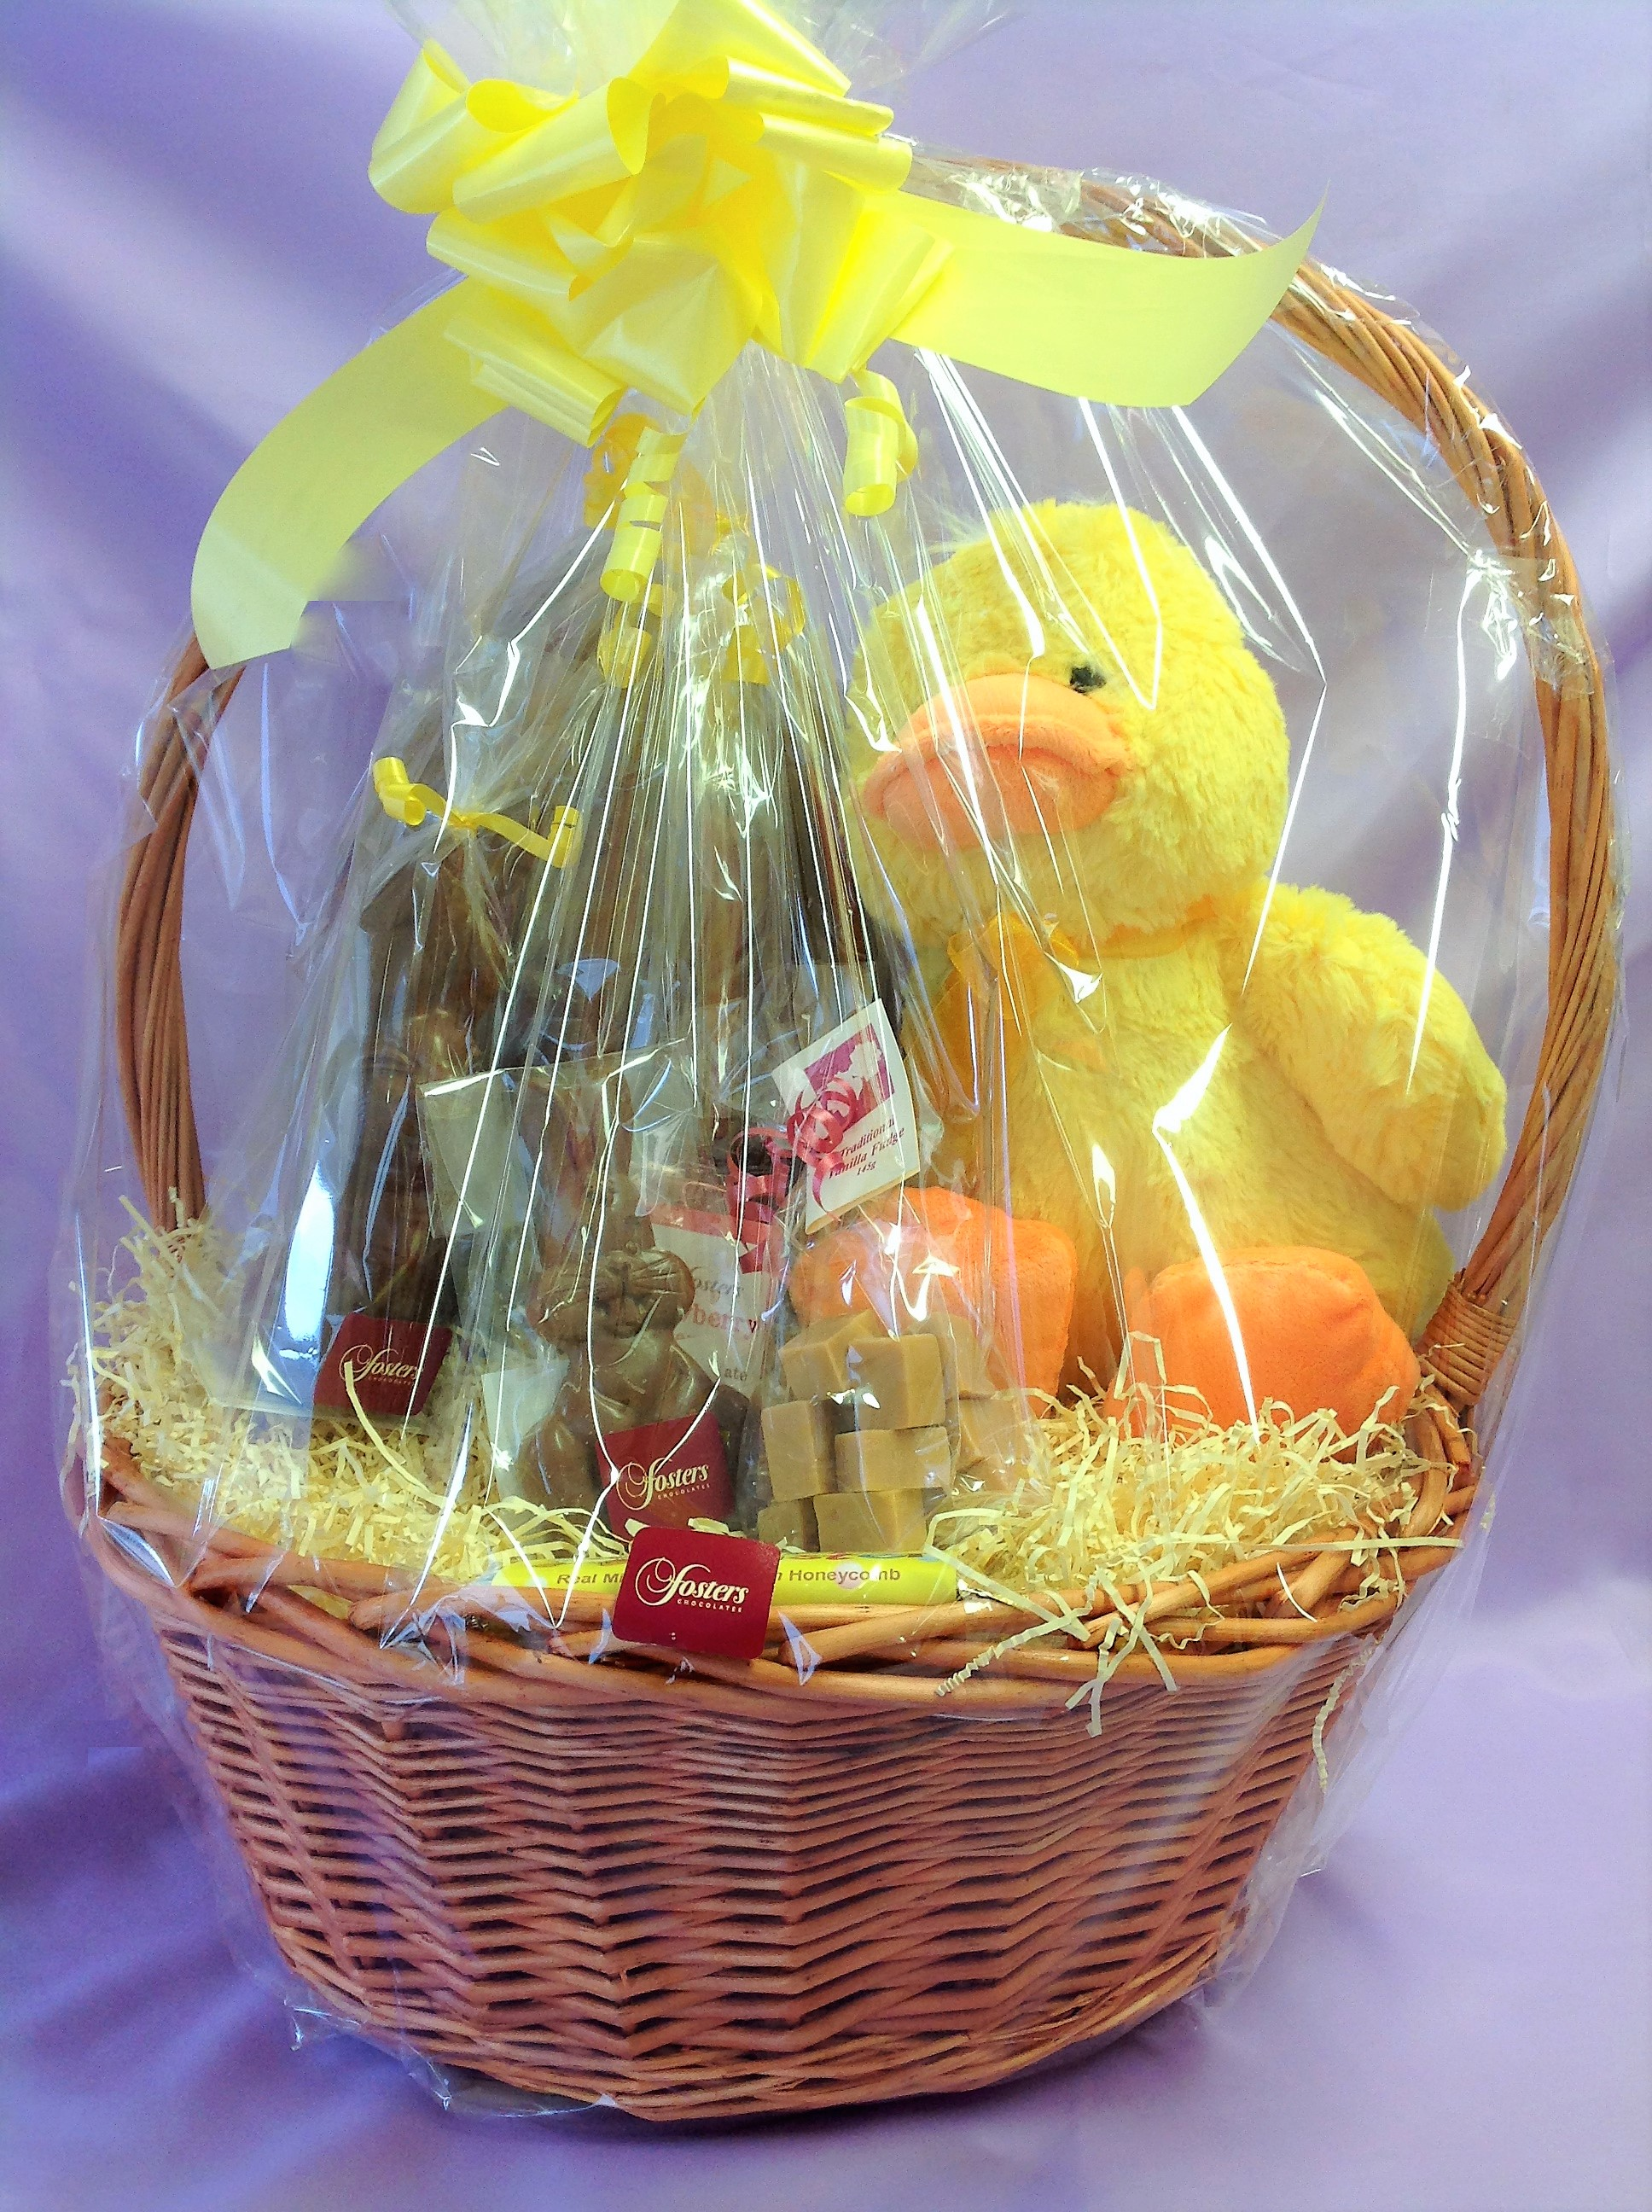 Kid's Easter Competition! - We have a fantastic Easter hamper up for grabs!Call into store to put your name in the draw.To enter you must be 12 or under and have purchased your glasses from Elliott Opticians in the last year!Winner announced Thursday 29th March! Hurry and good luck!